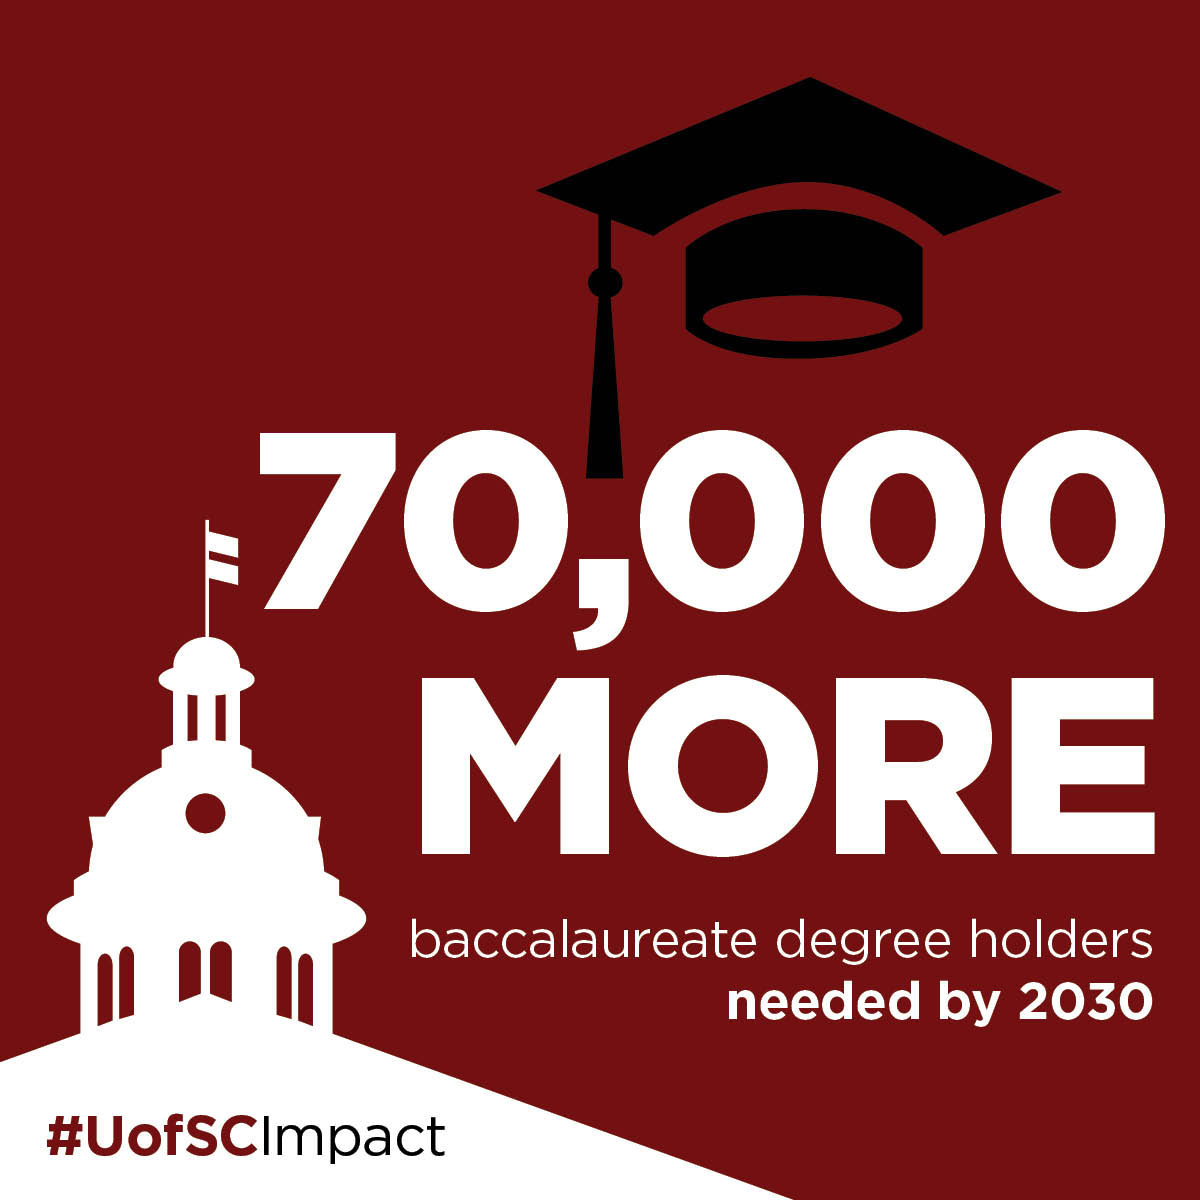 70,000 more baccalaureat degree holders needed by 2030 #UofSCImpact